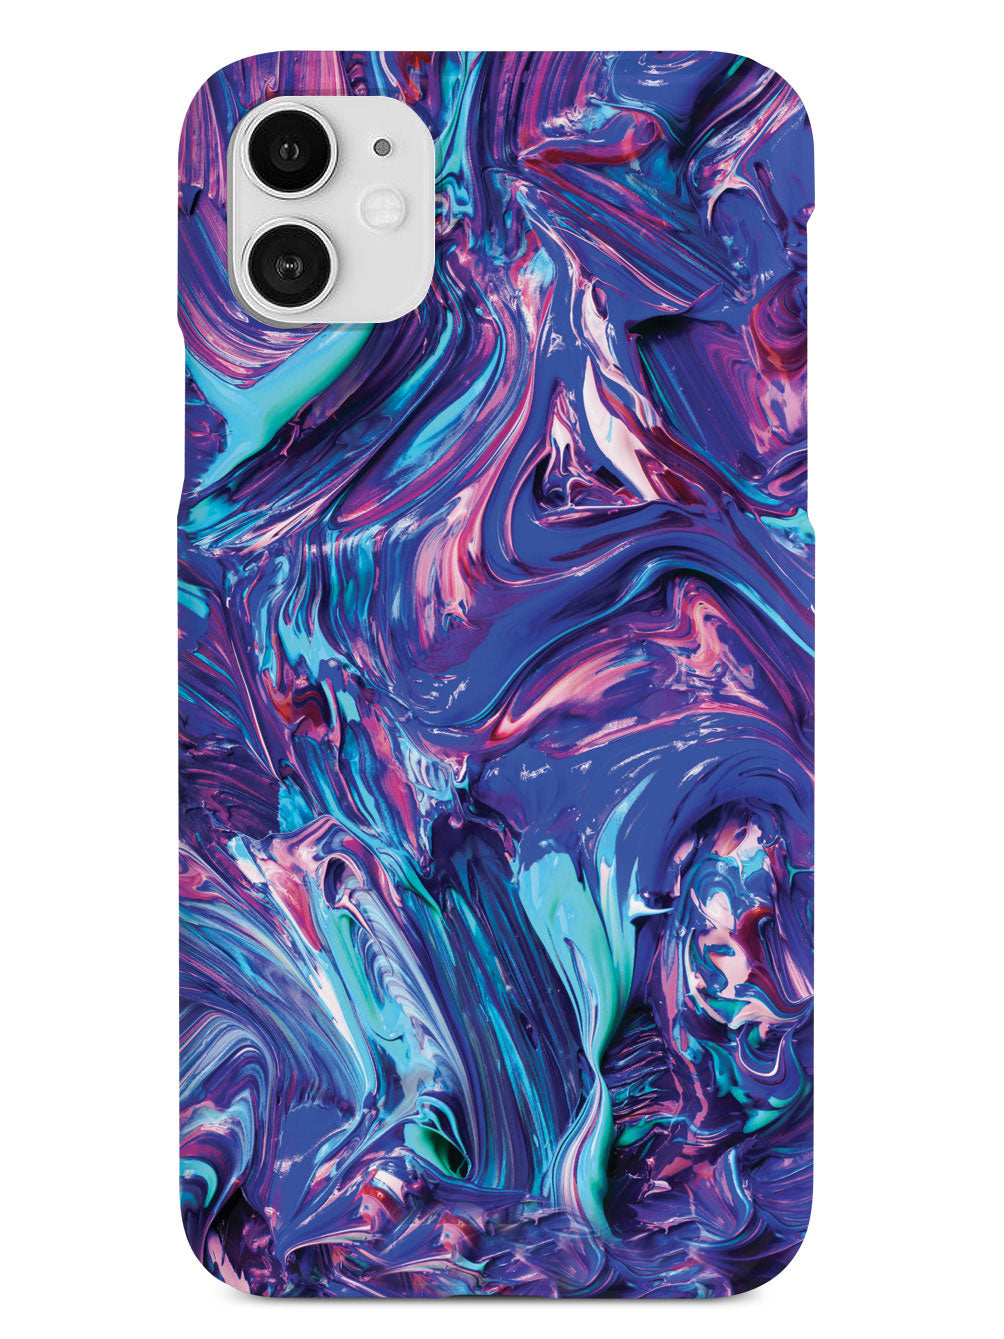 Mixed Swirled Paint Case